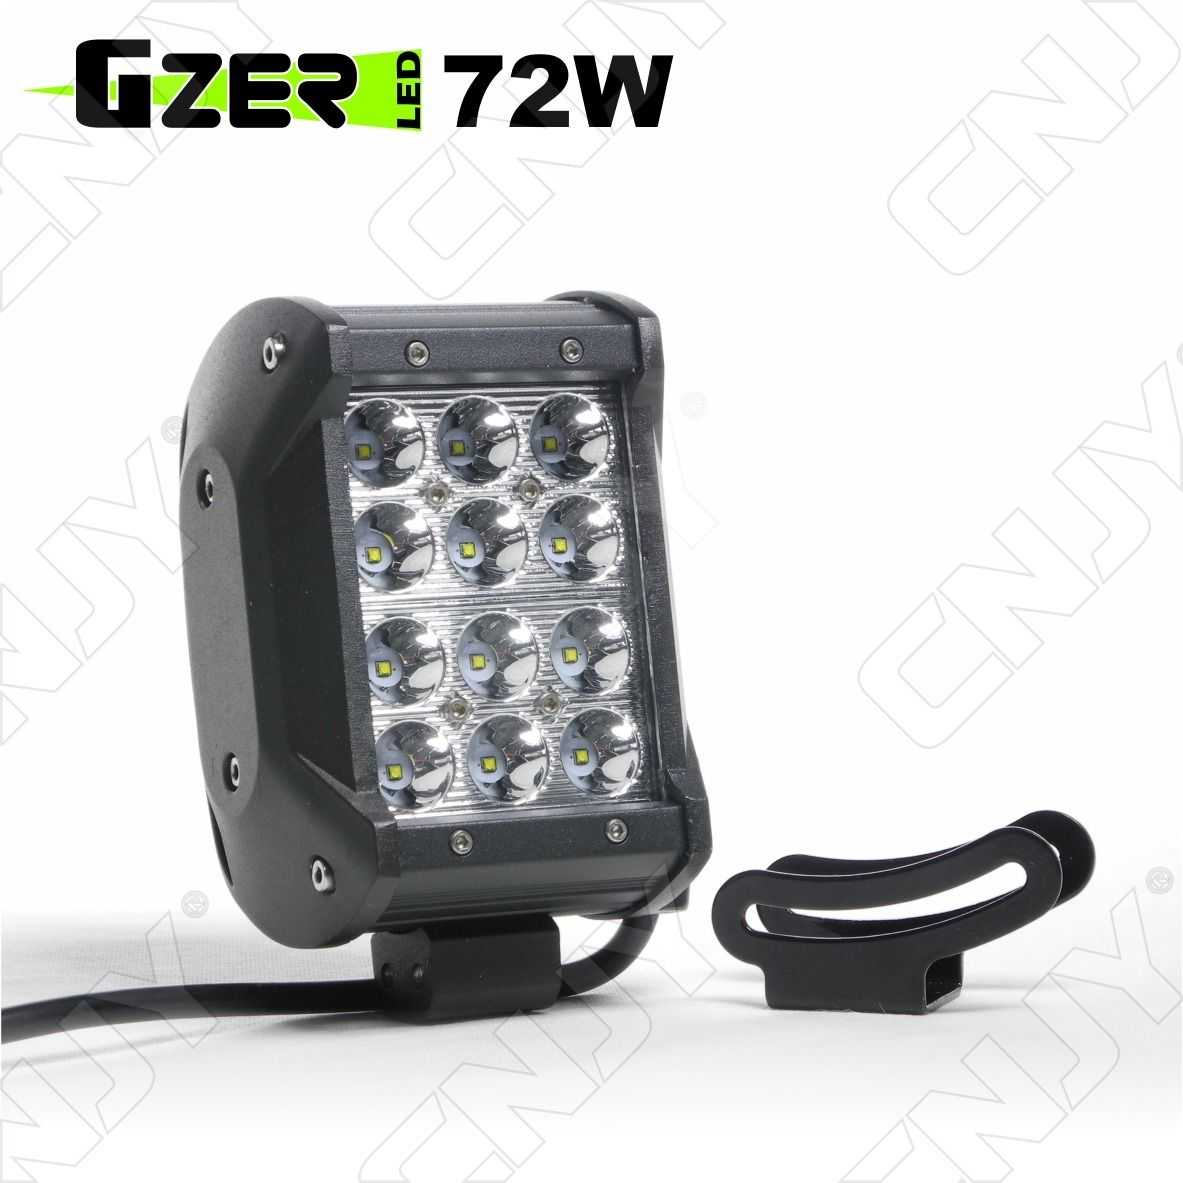 PHARE,DE,TRAVAIL,LED,4x4,BATEAU,CAMION,TRACTEUR,MINI,PELLE,PROJECTEUR,12V,24V,IP67,24W,WORKING,LIGHT,TRUCK,BOAT,CAR,WATERPROOF